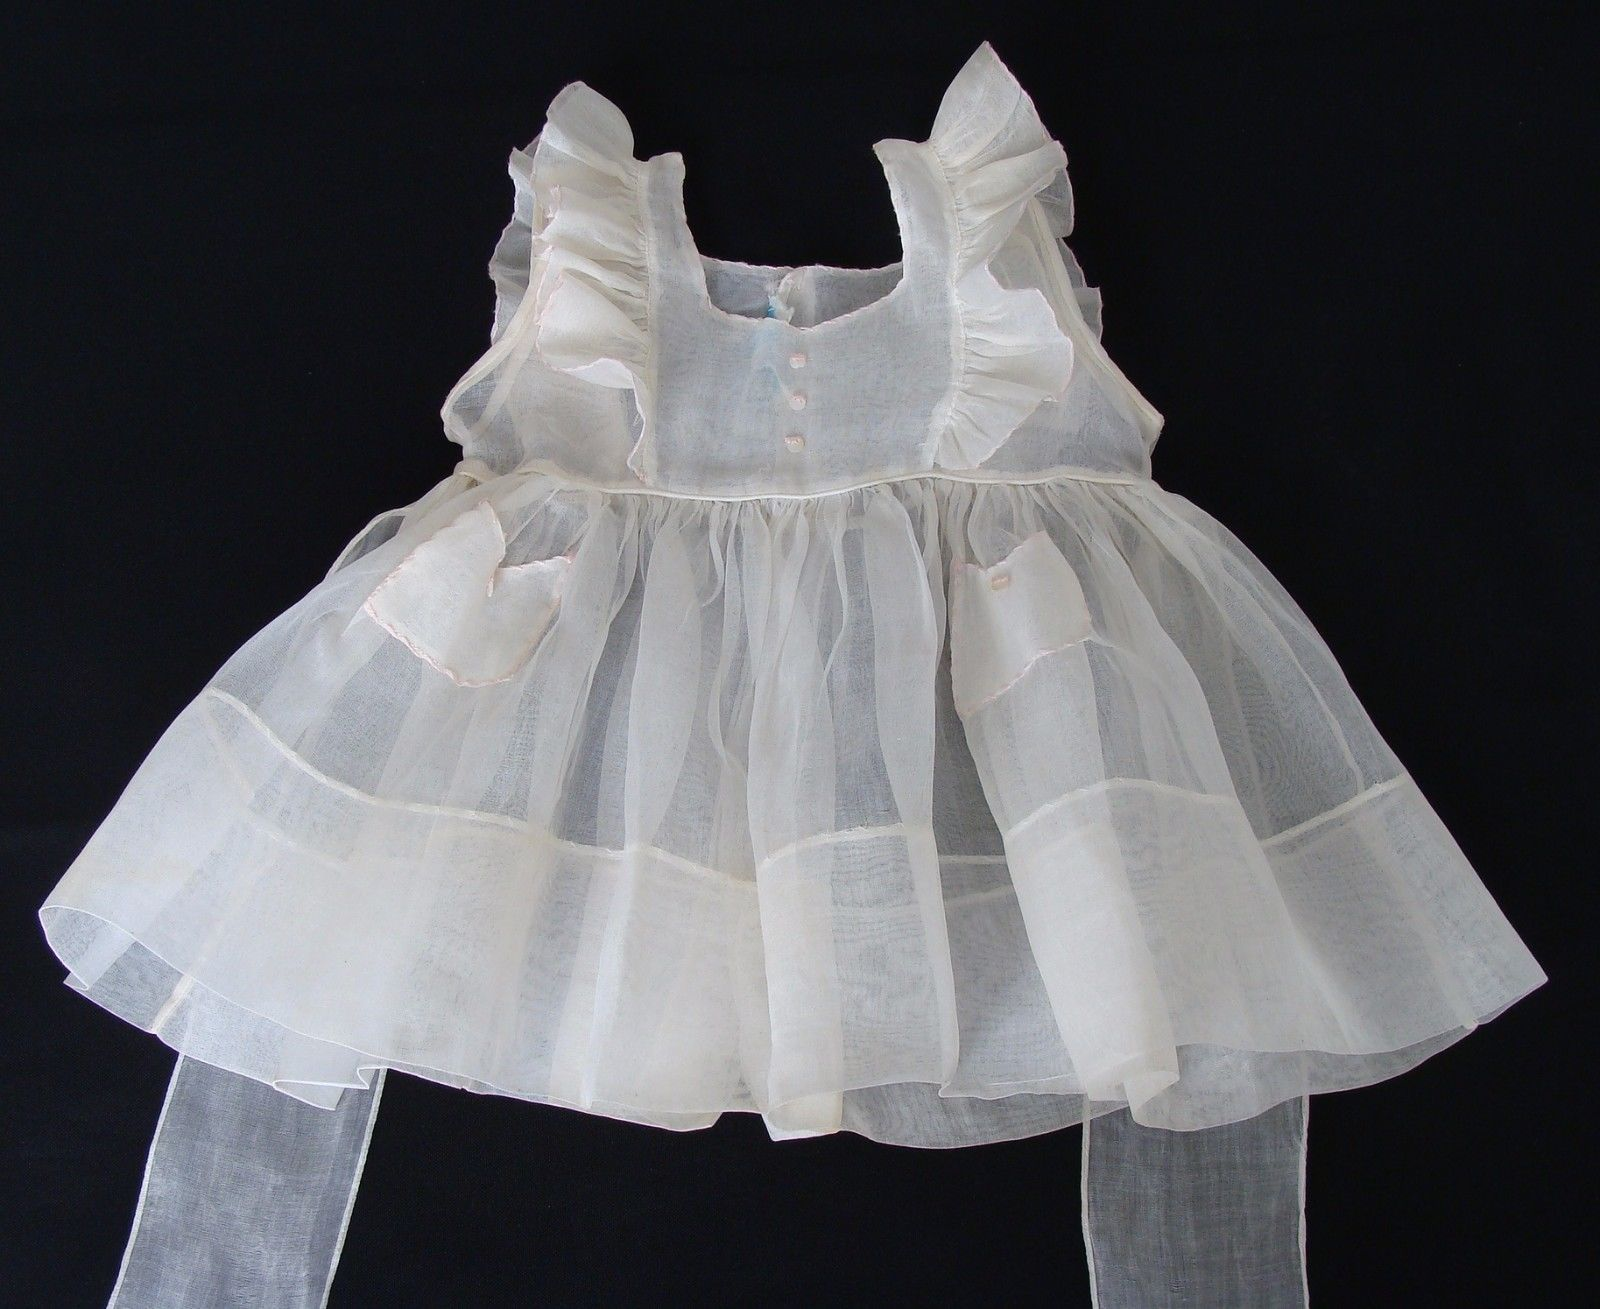 Vintage 1950s Sheer Cotton Organdy Girls Pinafore Dress A